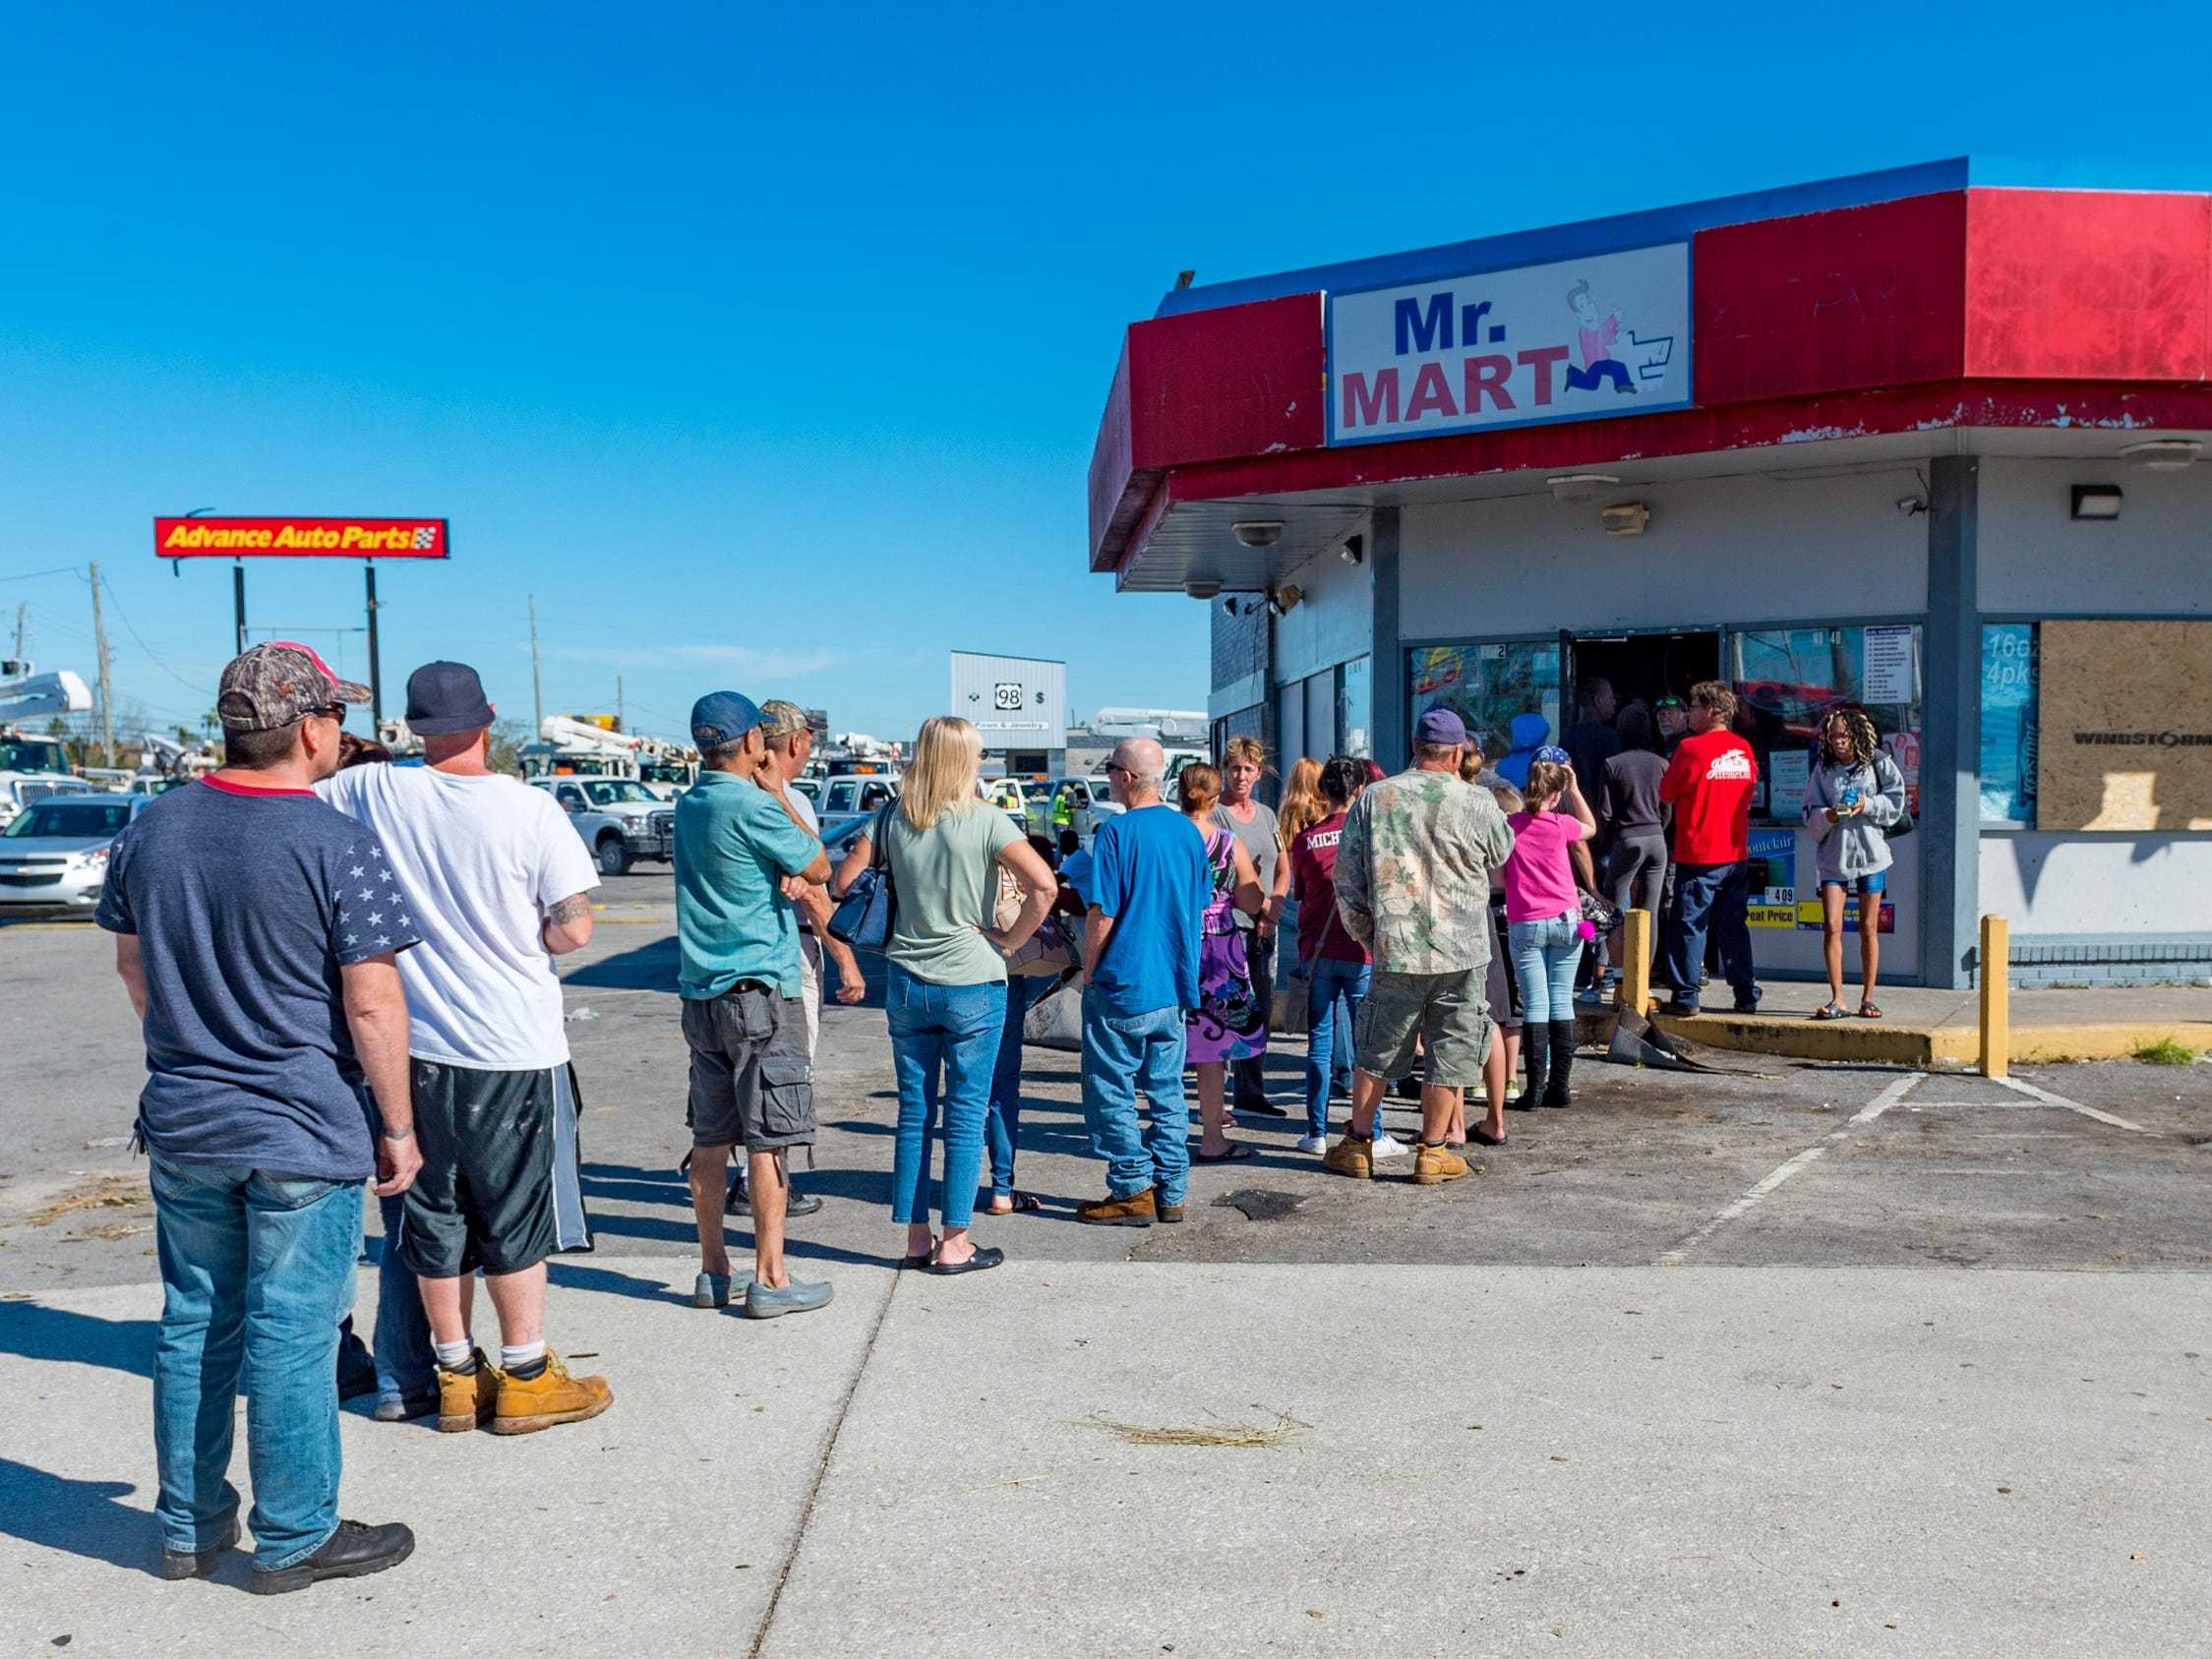 Long lines waiting for supplies in Panama City, Fla. Friday, Oct. 12, 2018.